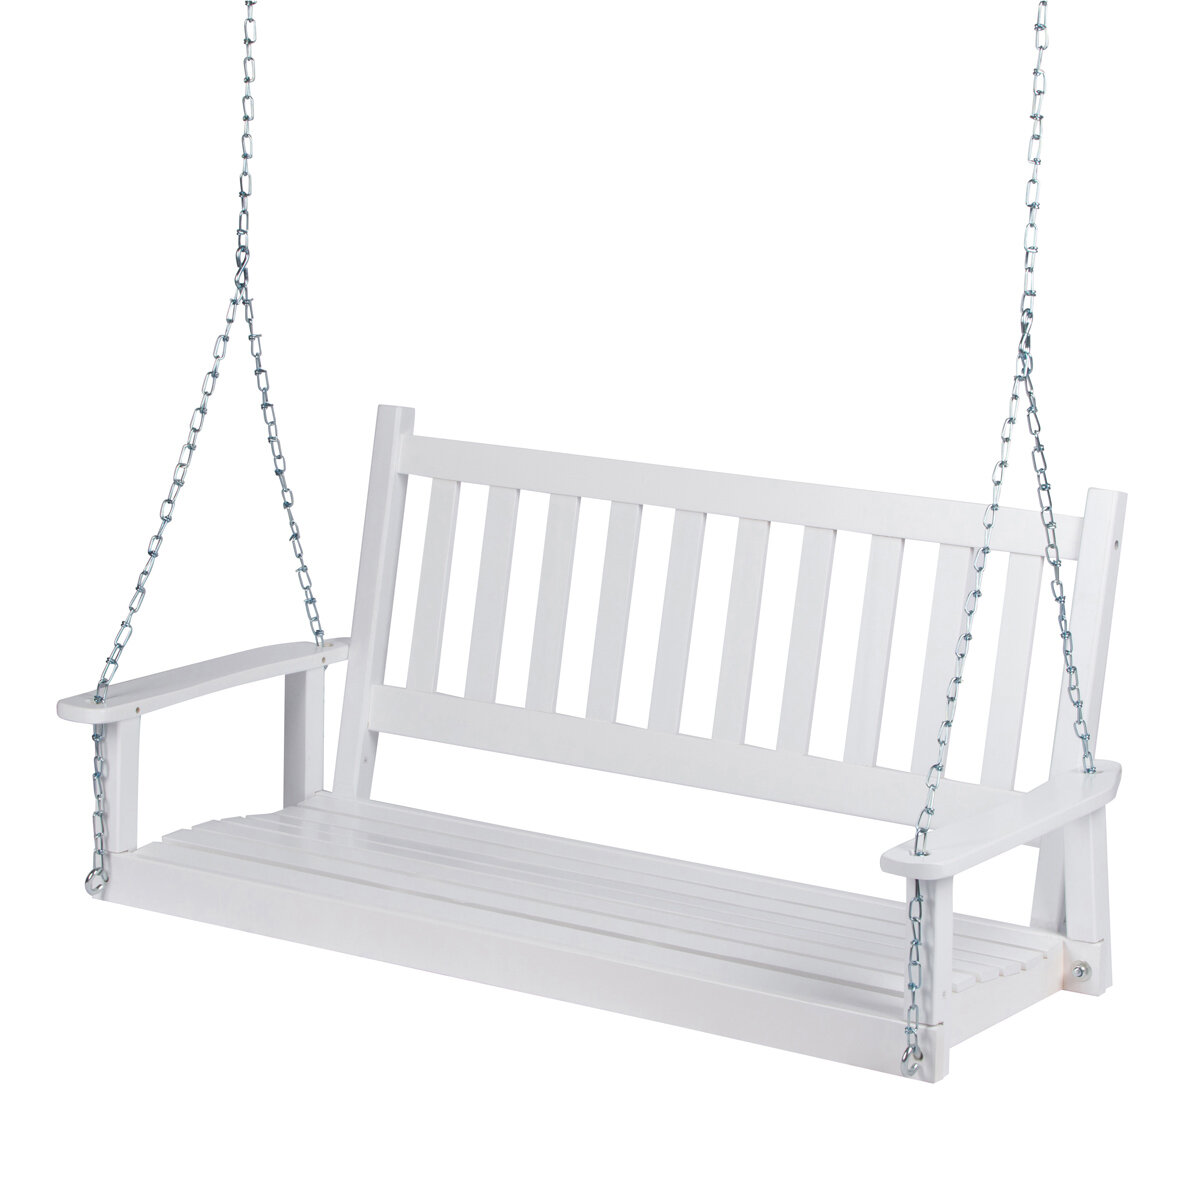 Millwood Pines Lindo Porch Swing